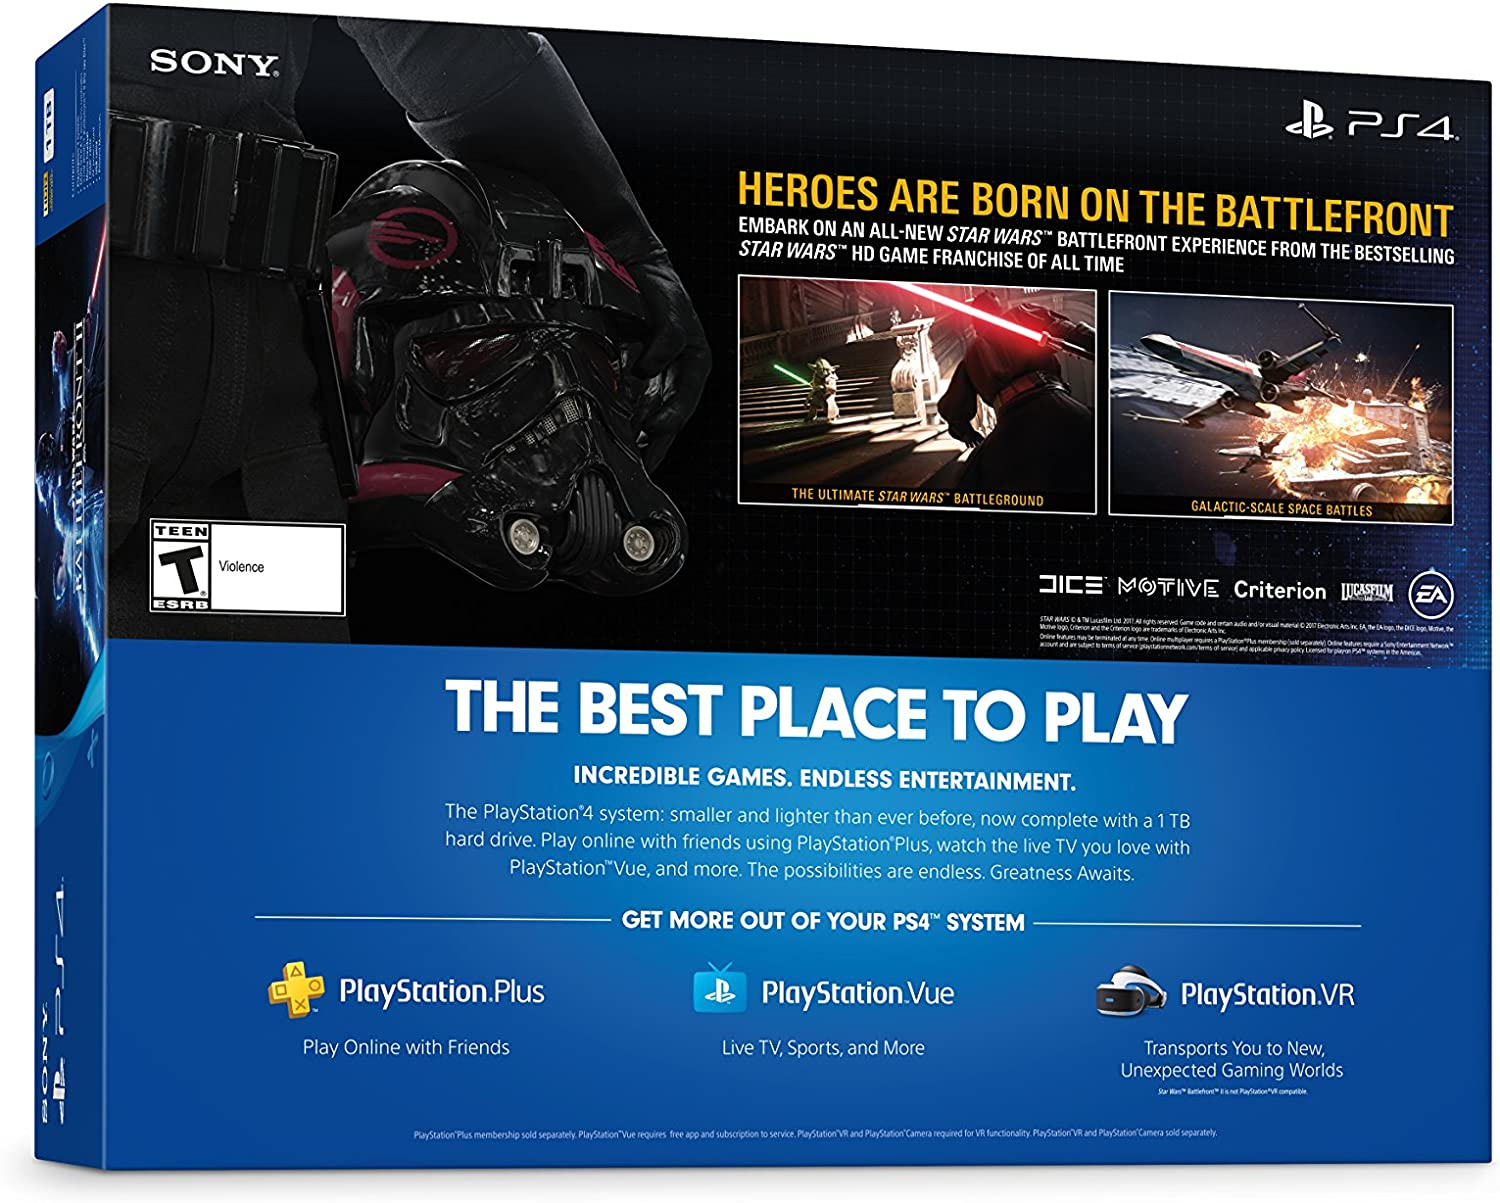 Sony PlayStation 4 Delgado Consola de 1 TB - Star Wars Battlefront II Bundle [continuado]: Amazon.es: Videojuegos